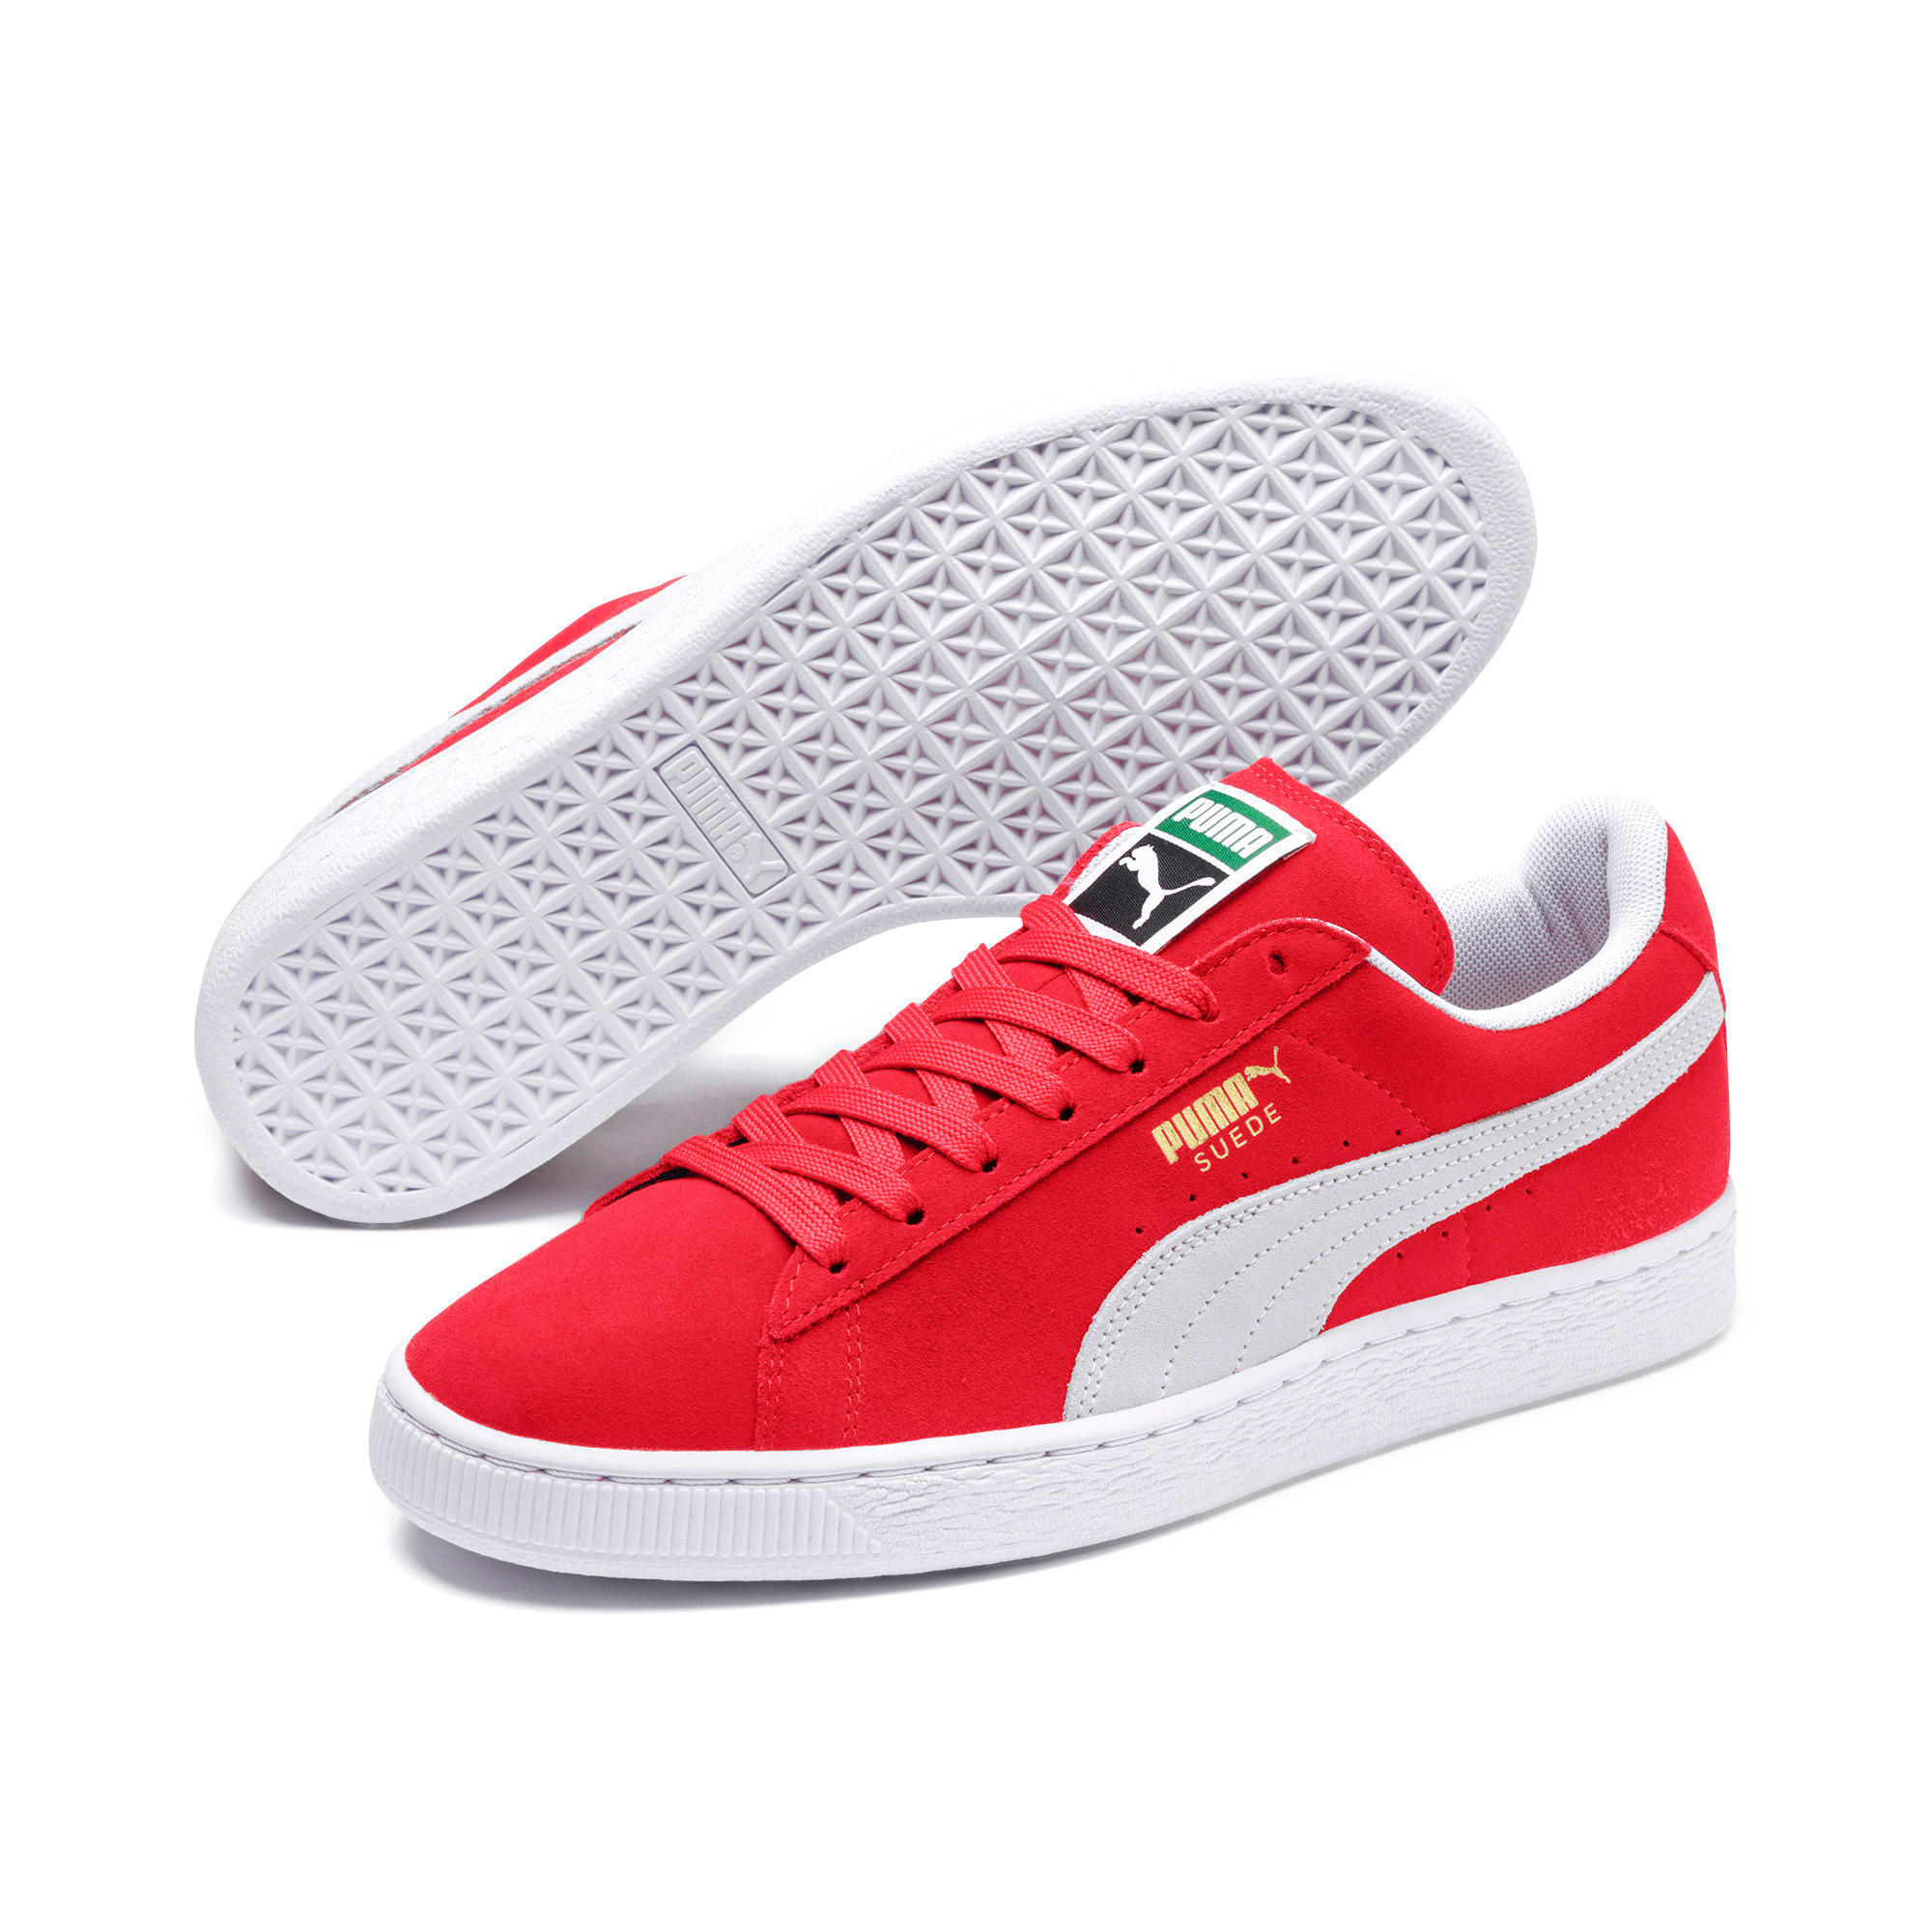 Thumbnail 2 of Suede Classic+ Sneakers, team regal red-white, medium